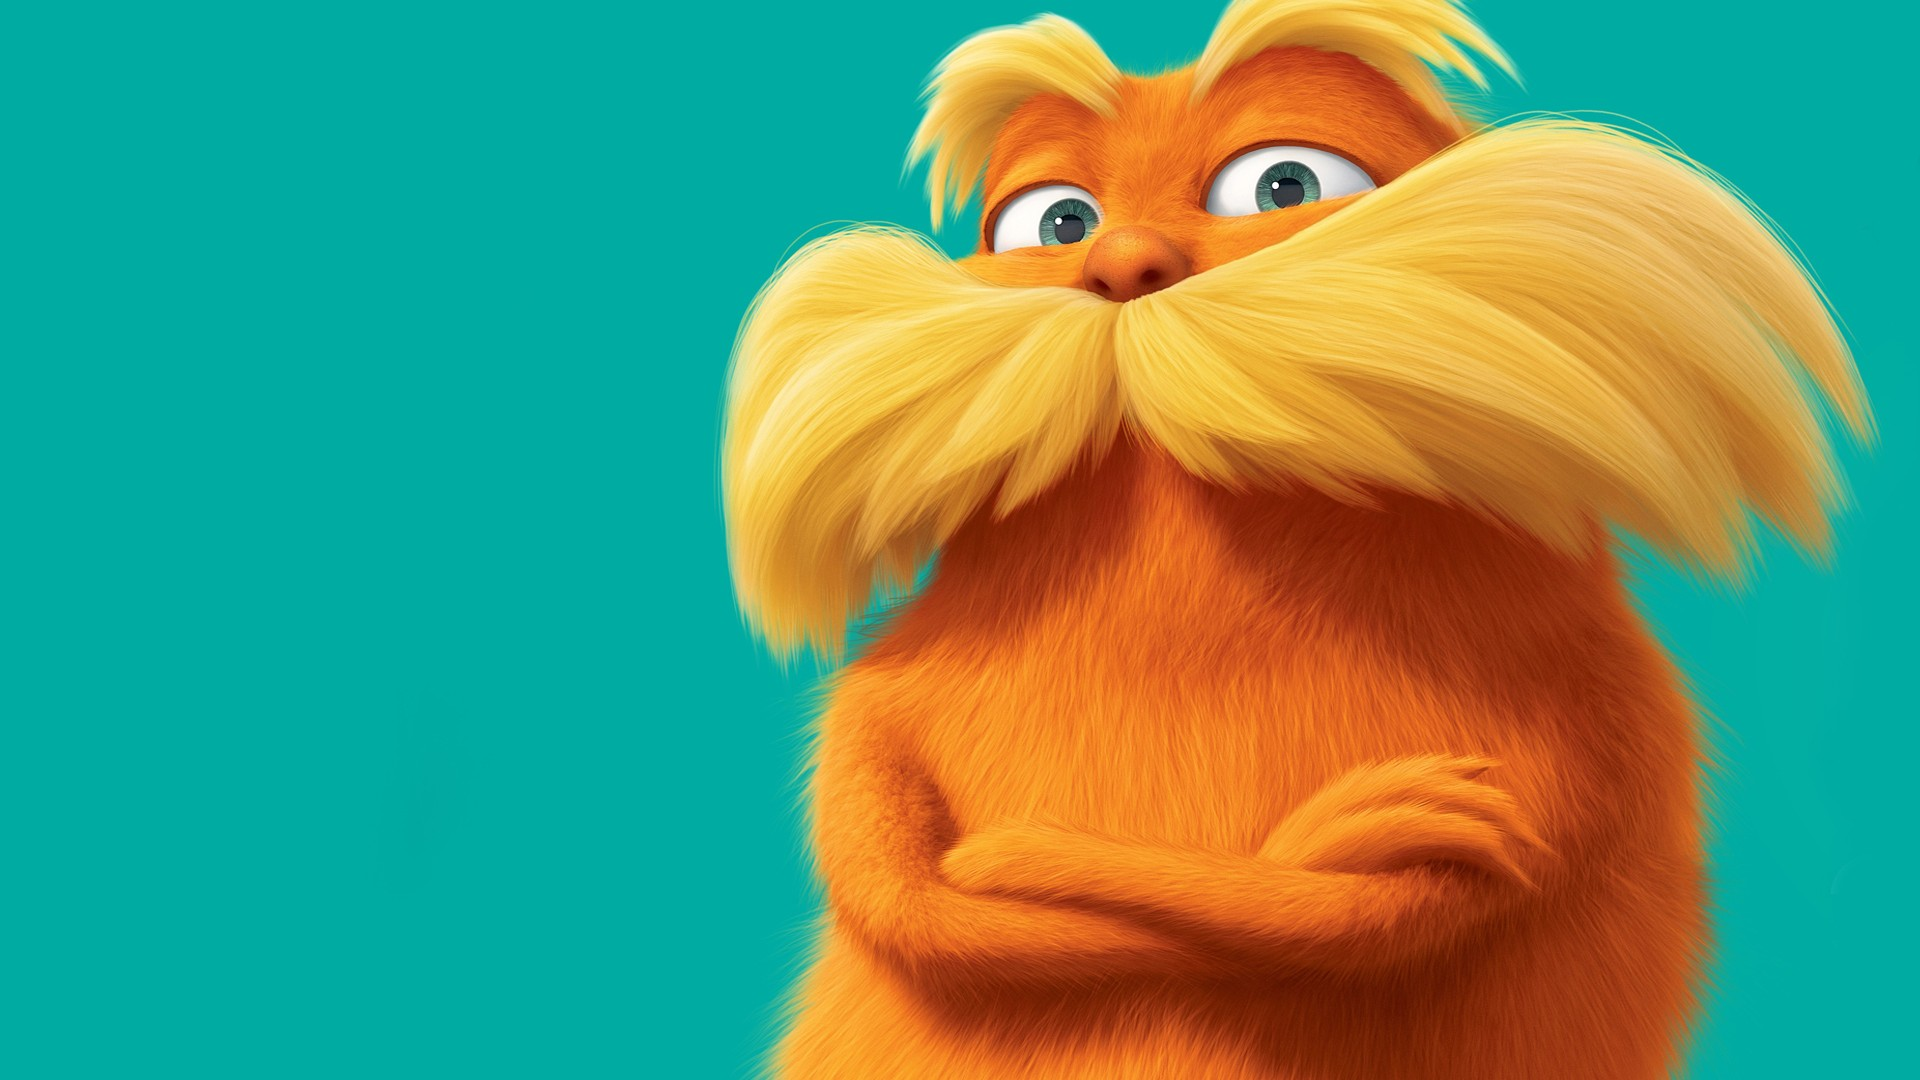 Lorax pictures to color Dr Seuss Lorax Coloring Page - m